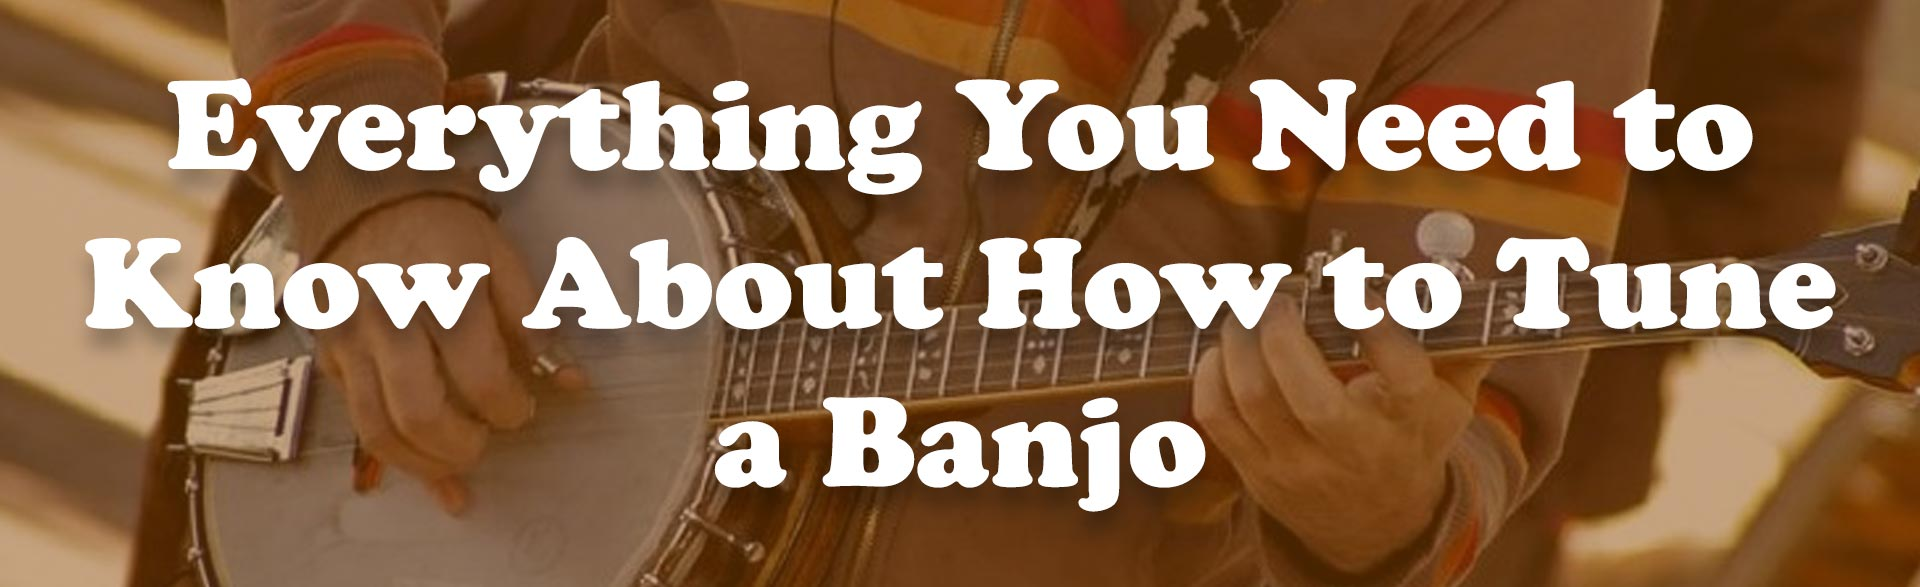 Everything You Need to Know About How to Tune a Banjo